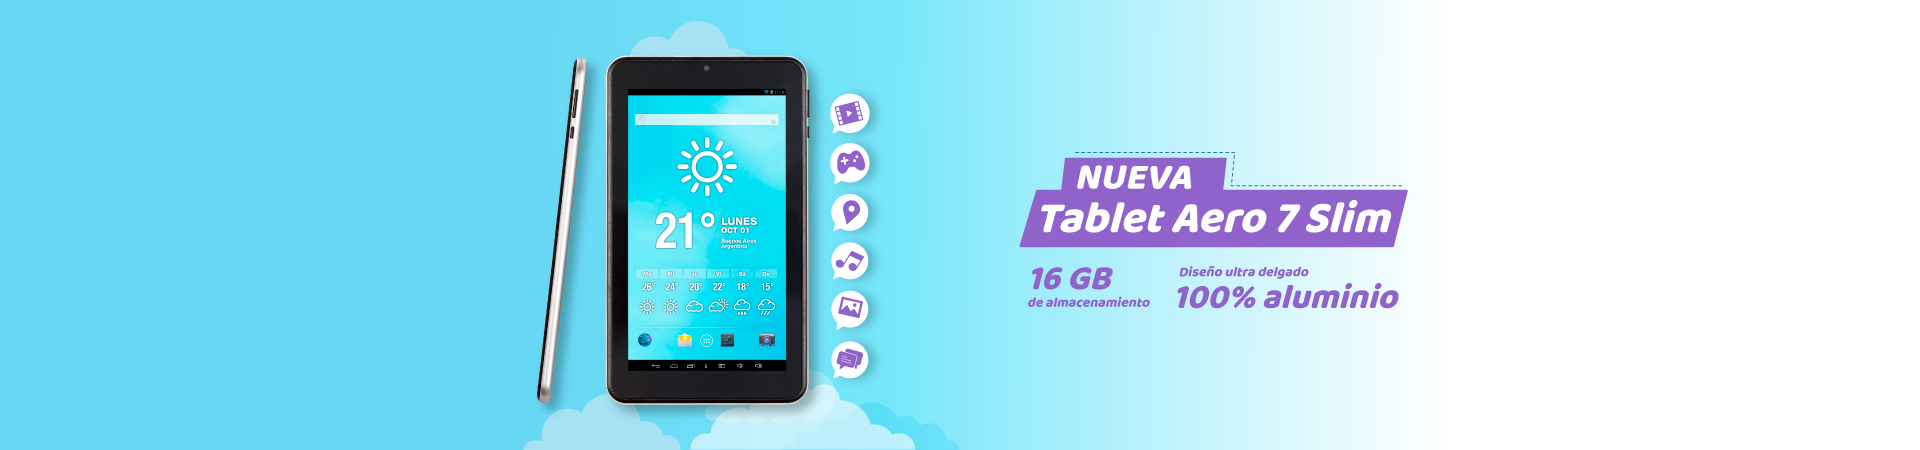 Tablet 7 Slim